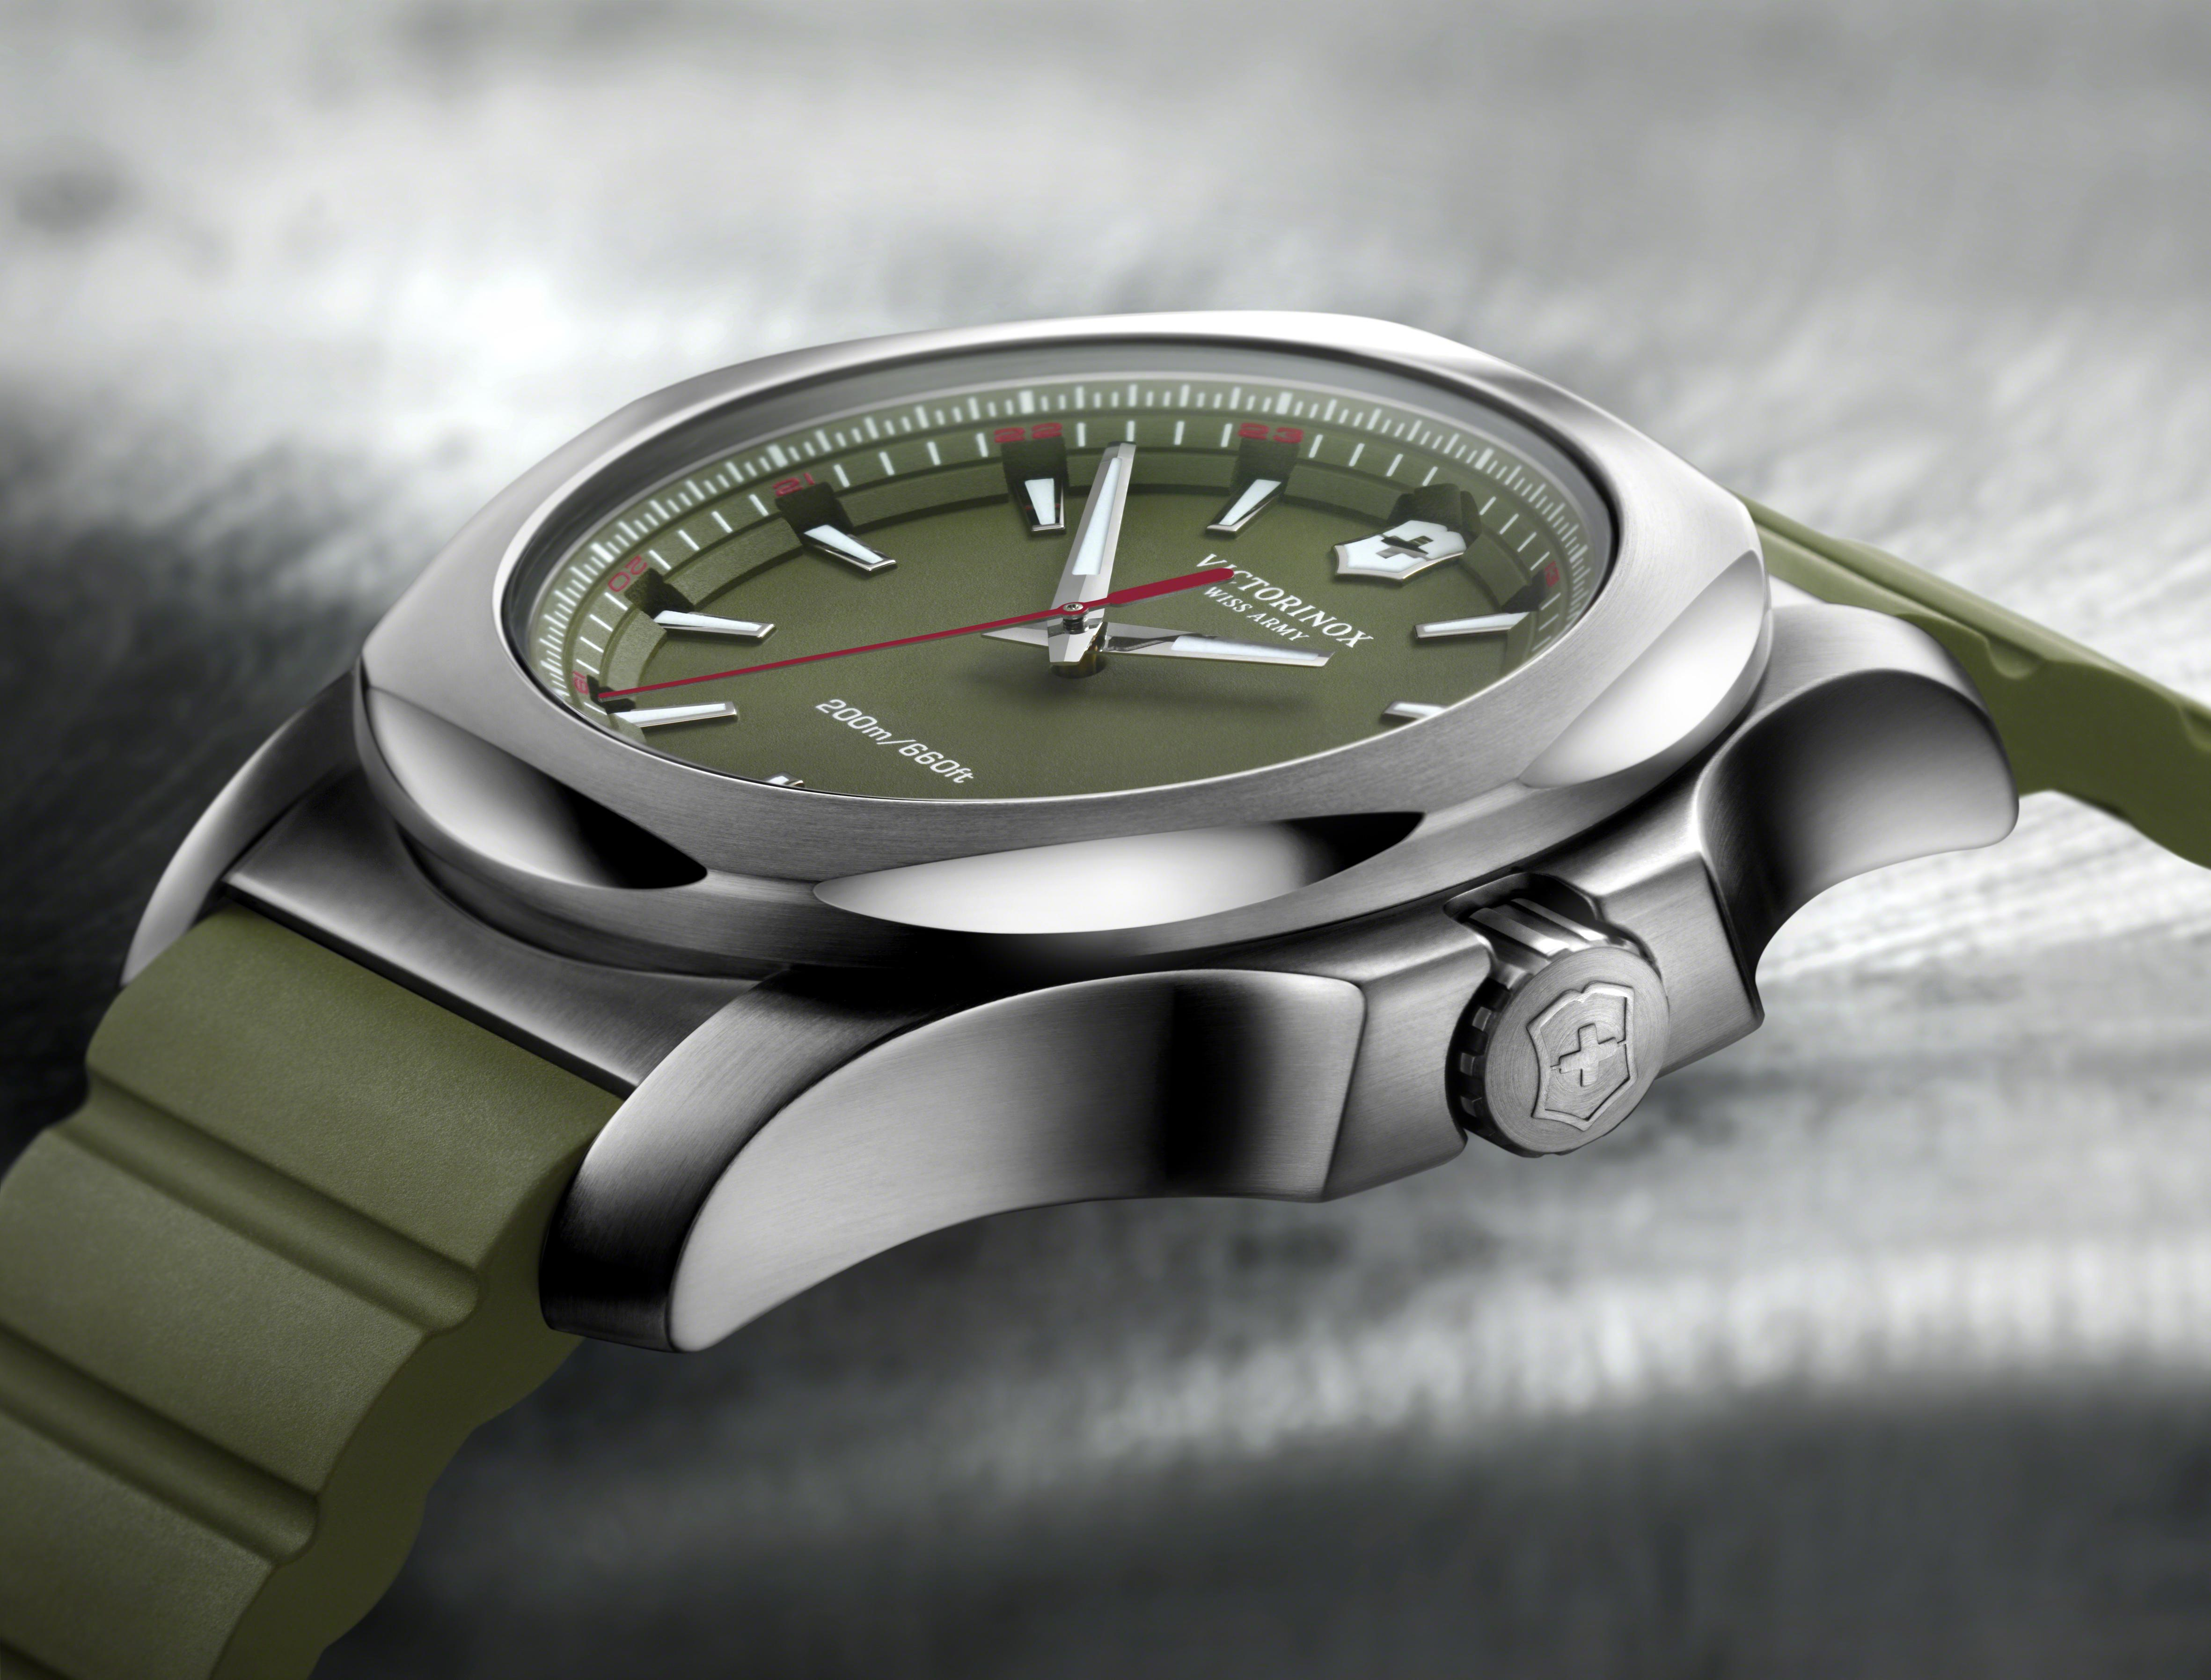 Victorinox-inox-watch-green